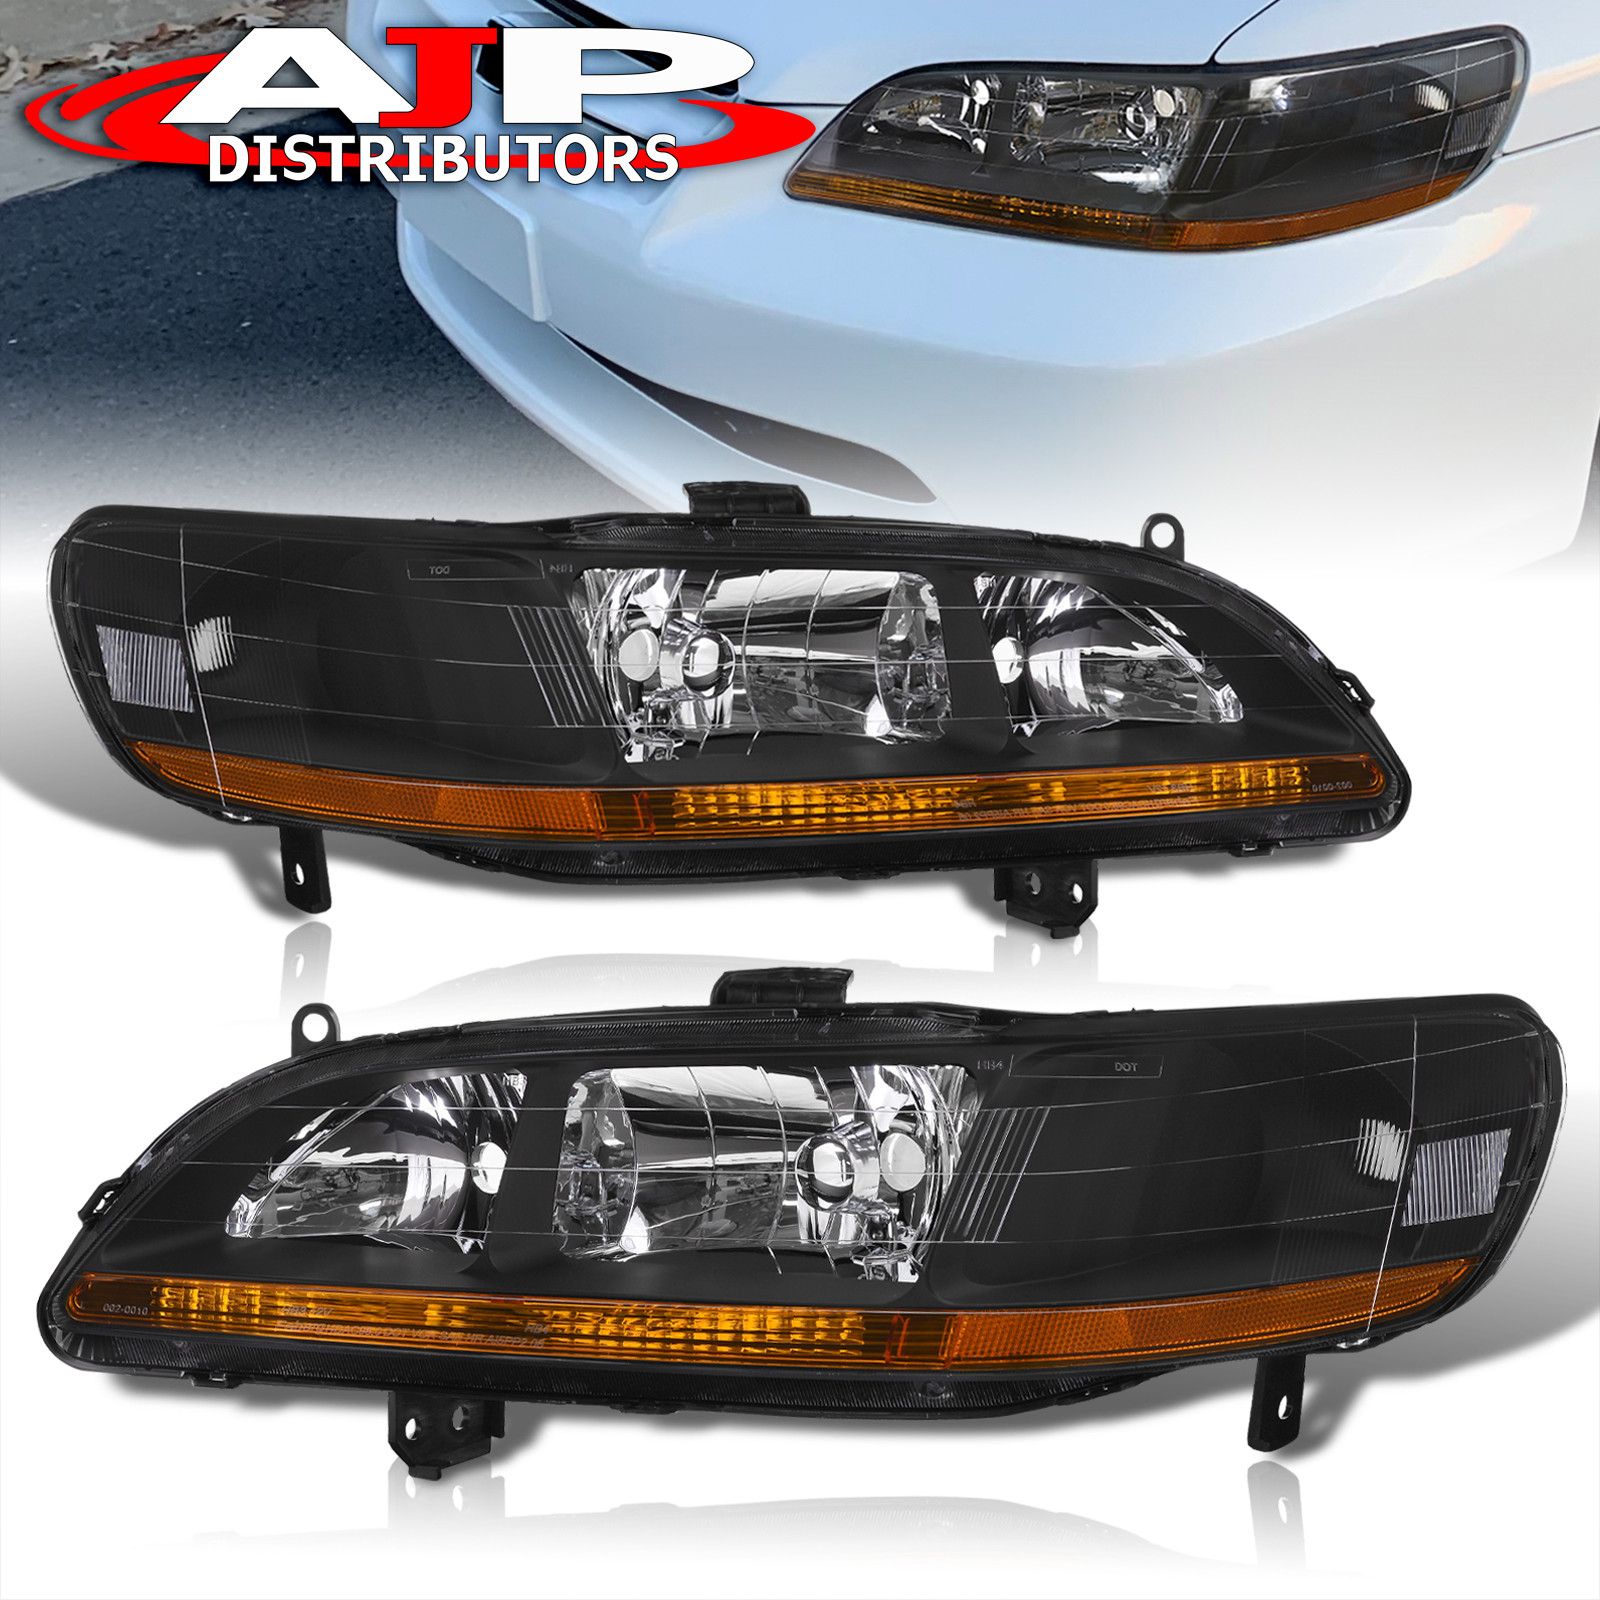 98 Honda Accord Coupe For Sale: 98-02 ACCORD DX LX EX V6 JDM BLACK HEADLIGHTS W/ AMBER